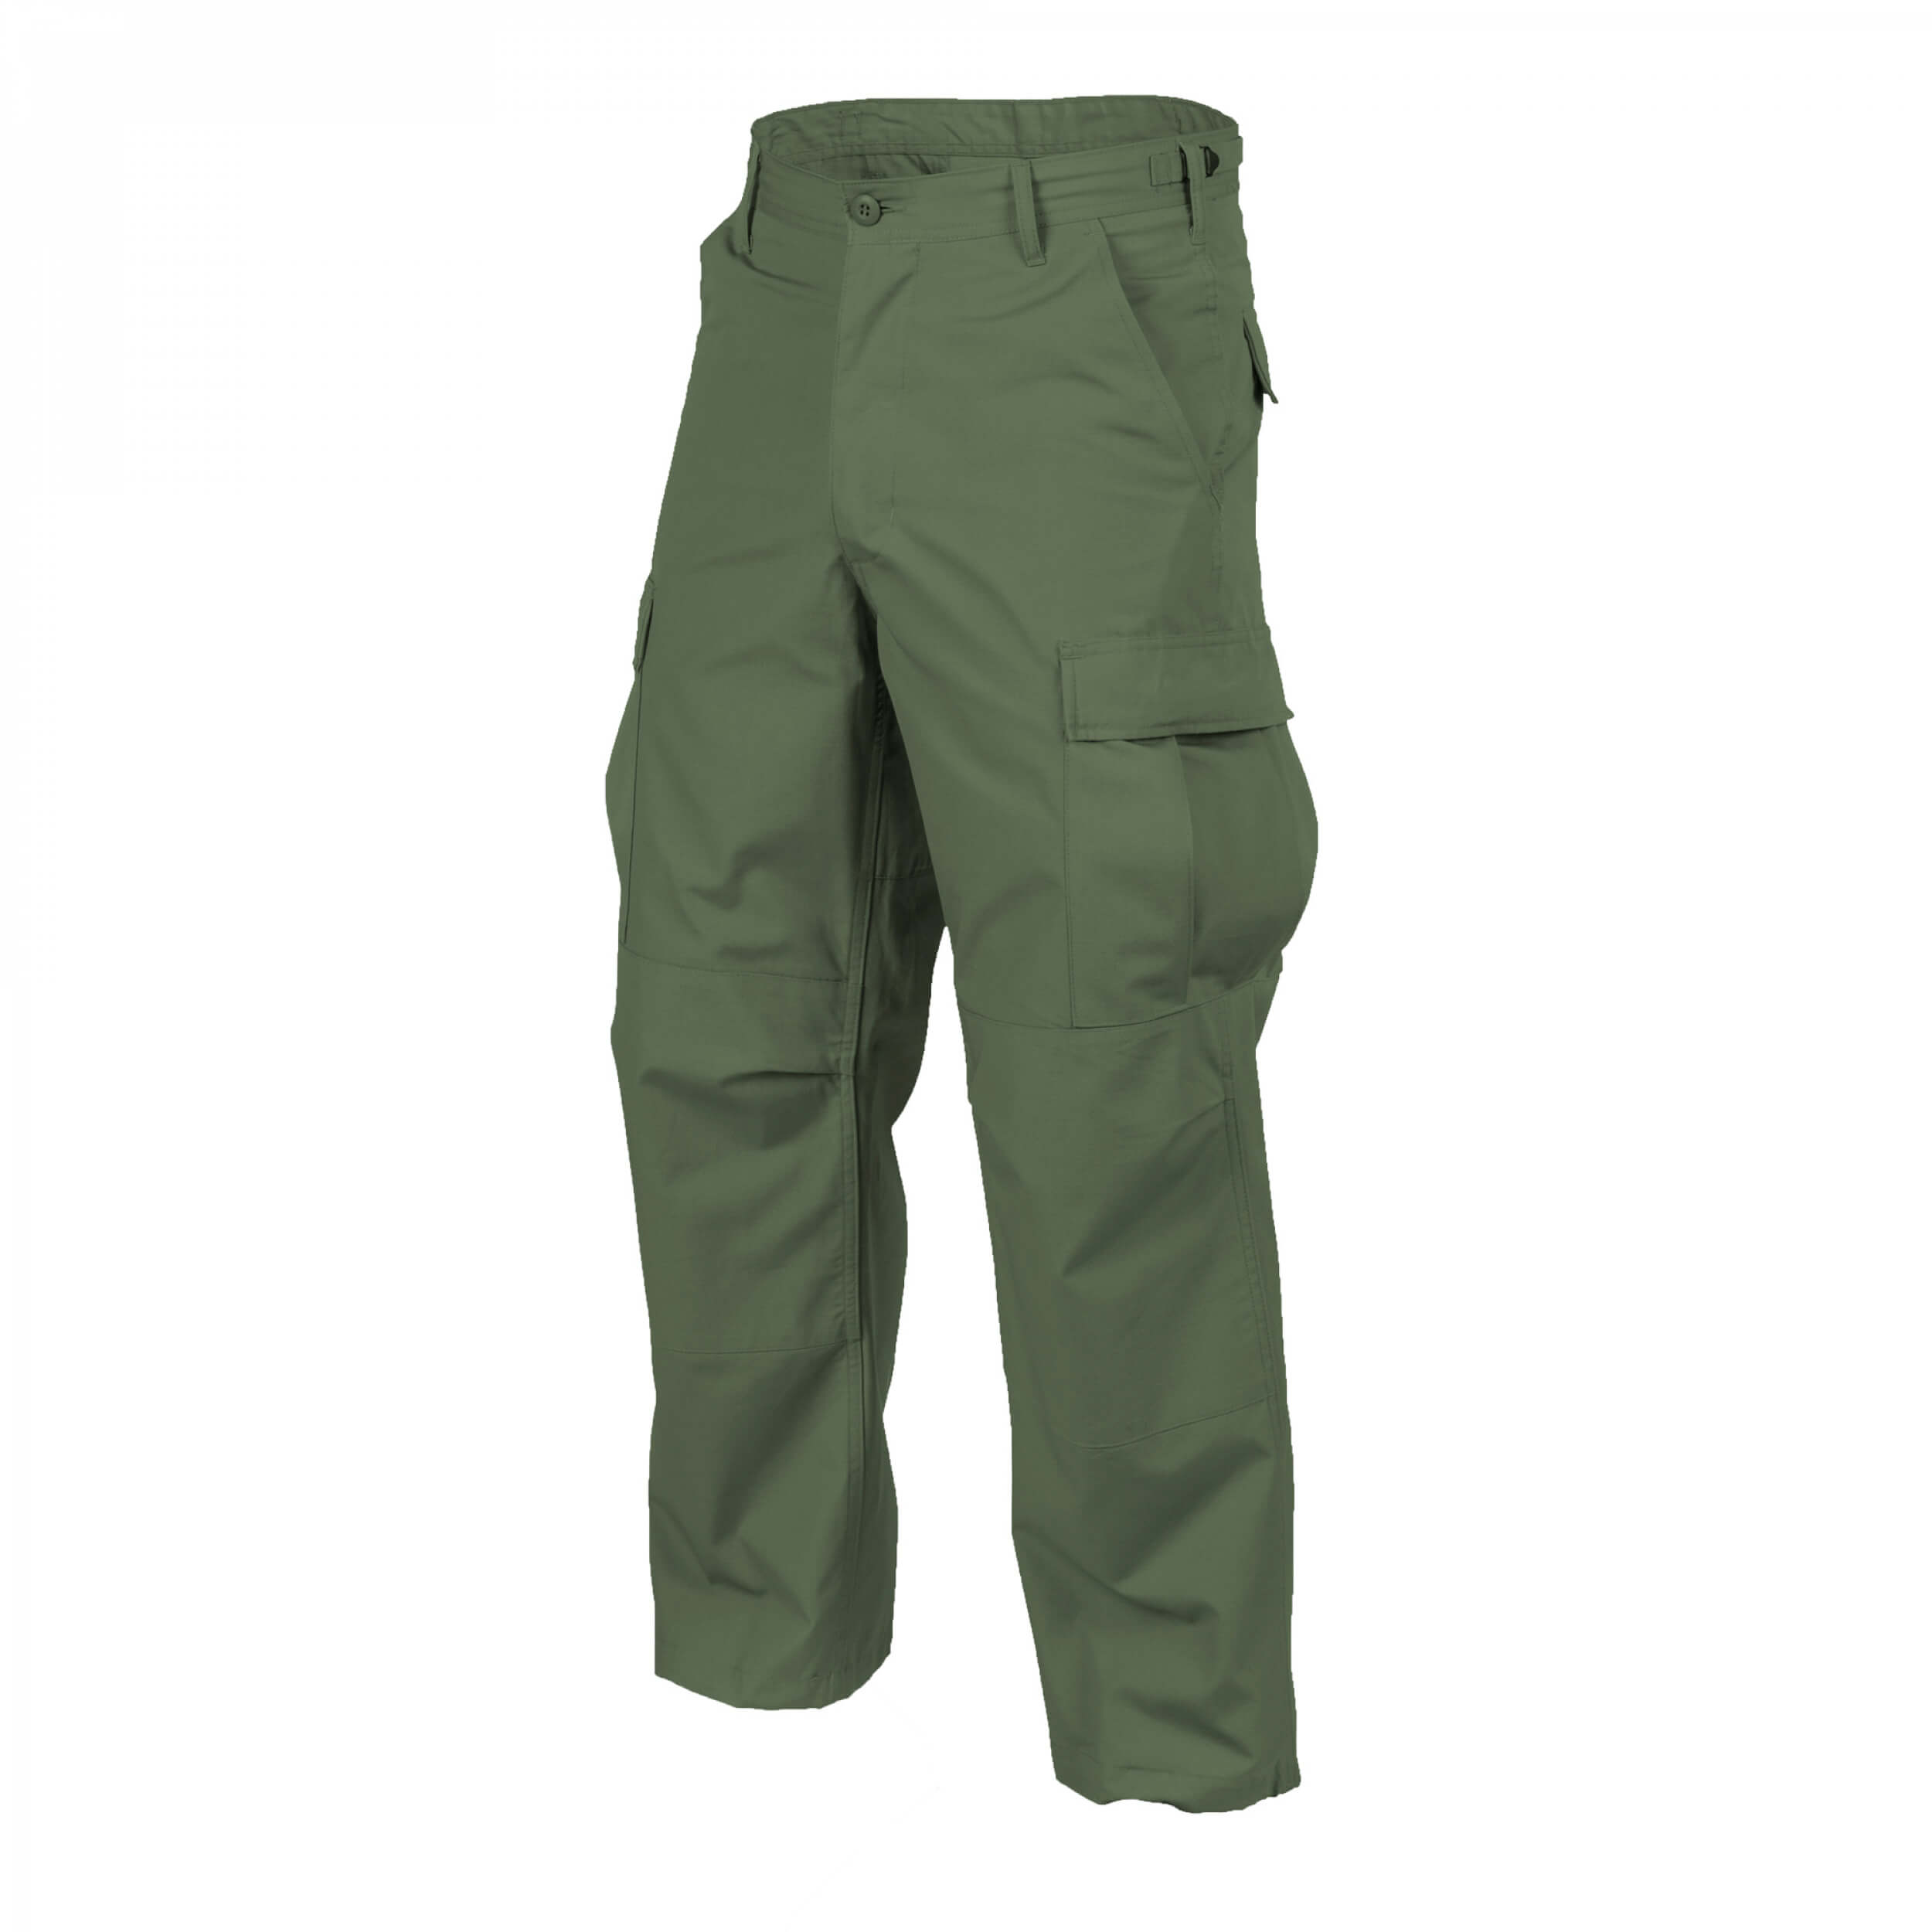 Helikon-Tex BDU Trousers - PolyCotton Ripstop - Olive Green